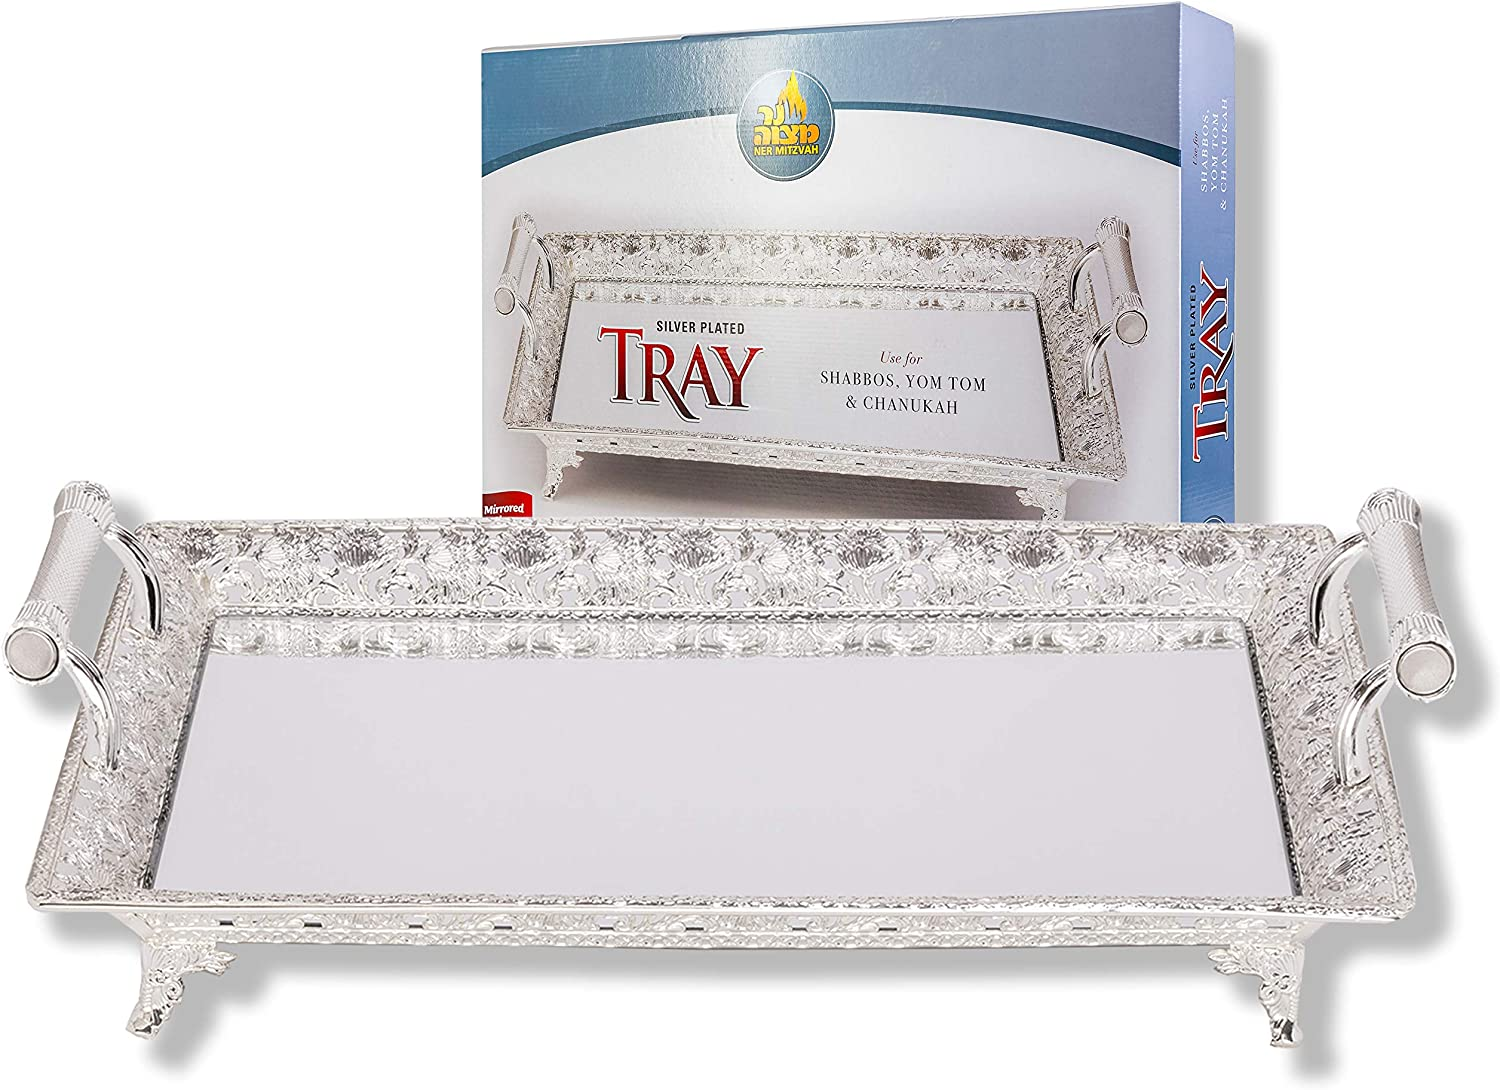 Menorah Max 86% OFF Silver Plated Tray Special price for a limited time - Drip Hanukkah for Shabbo Use